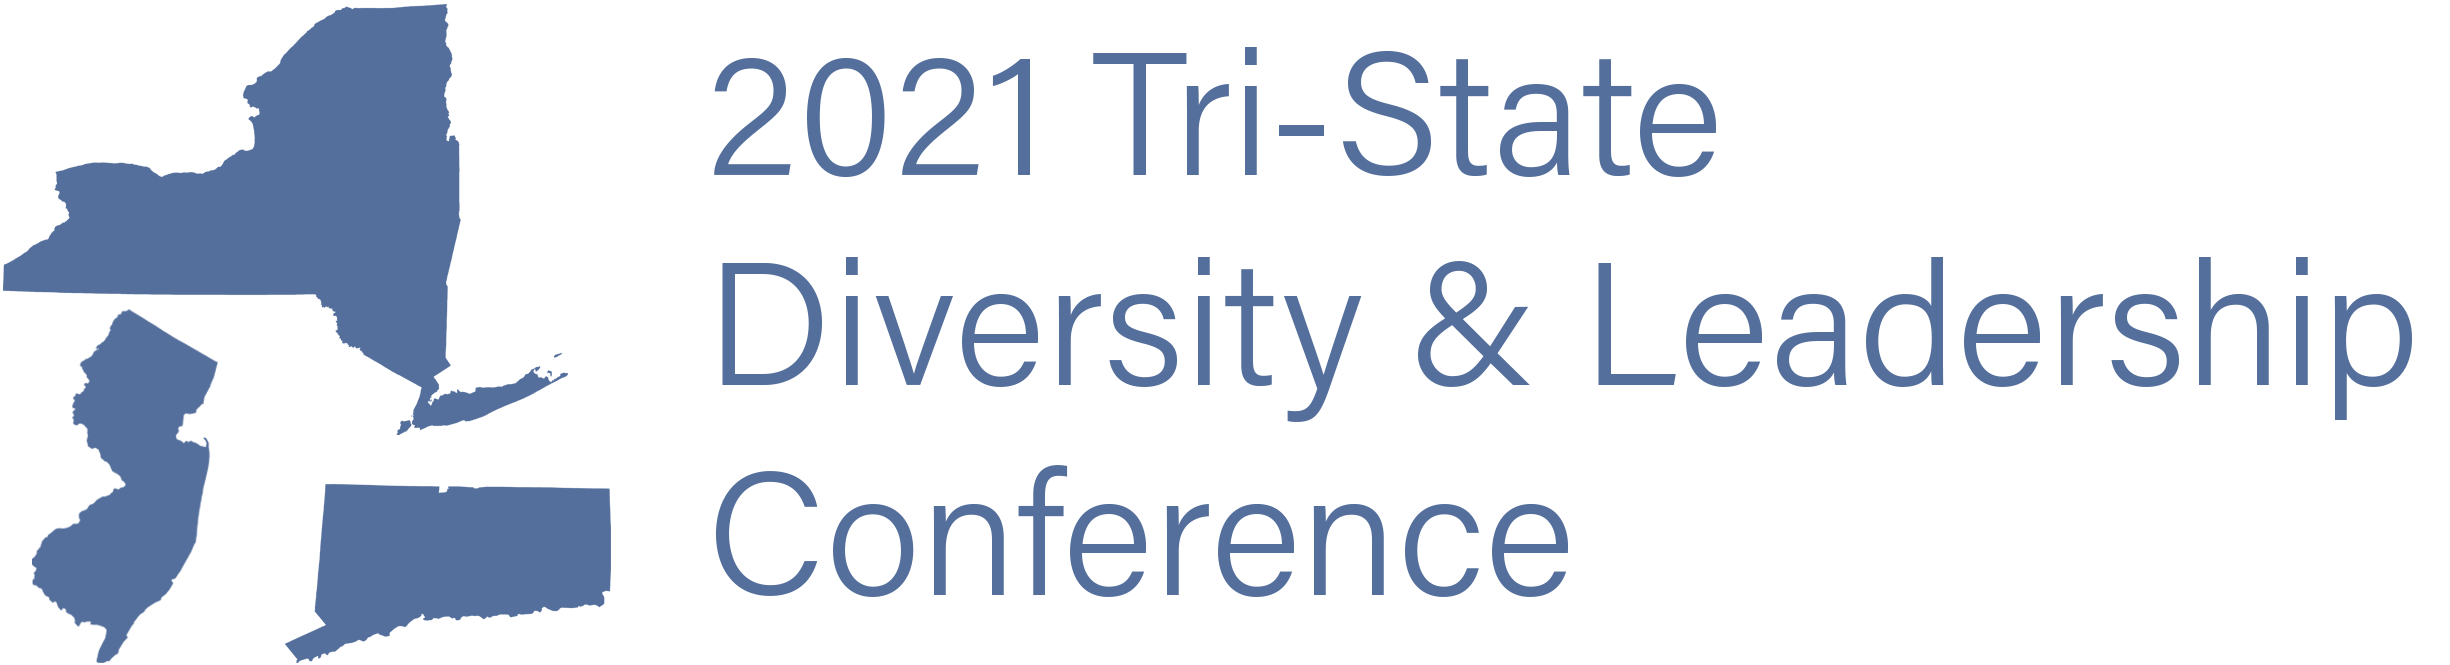 2021 9th Annual Tri-State Diversity & Leadership Conference (Virtual)